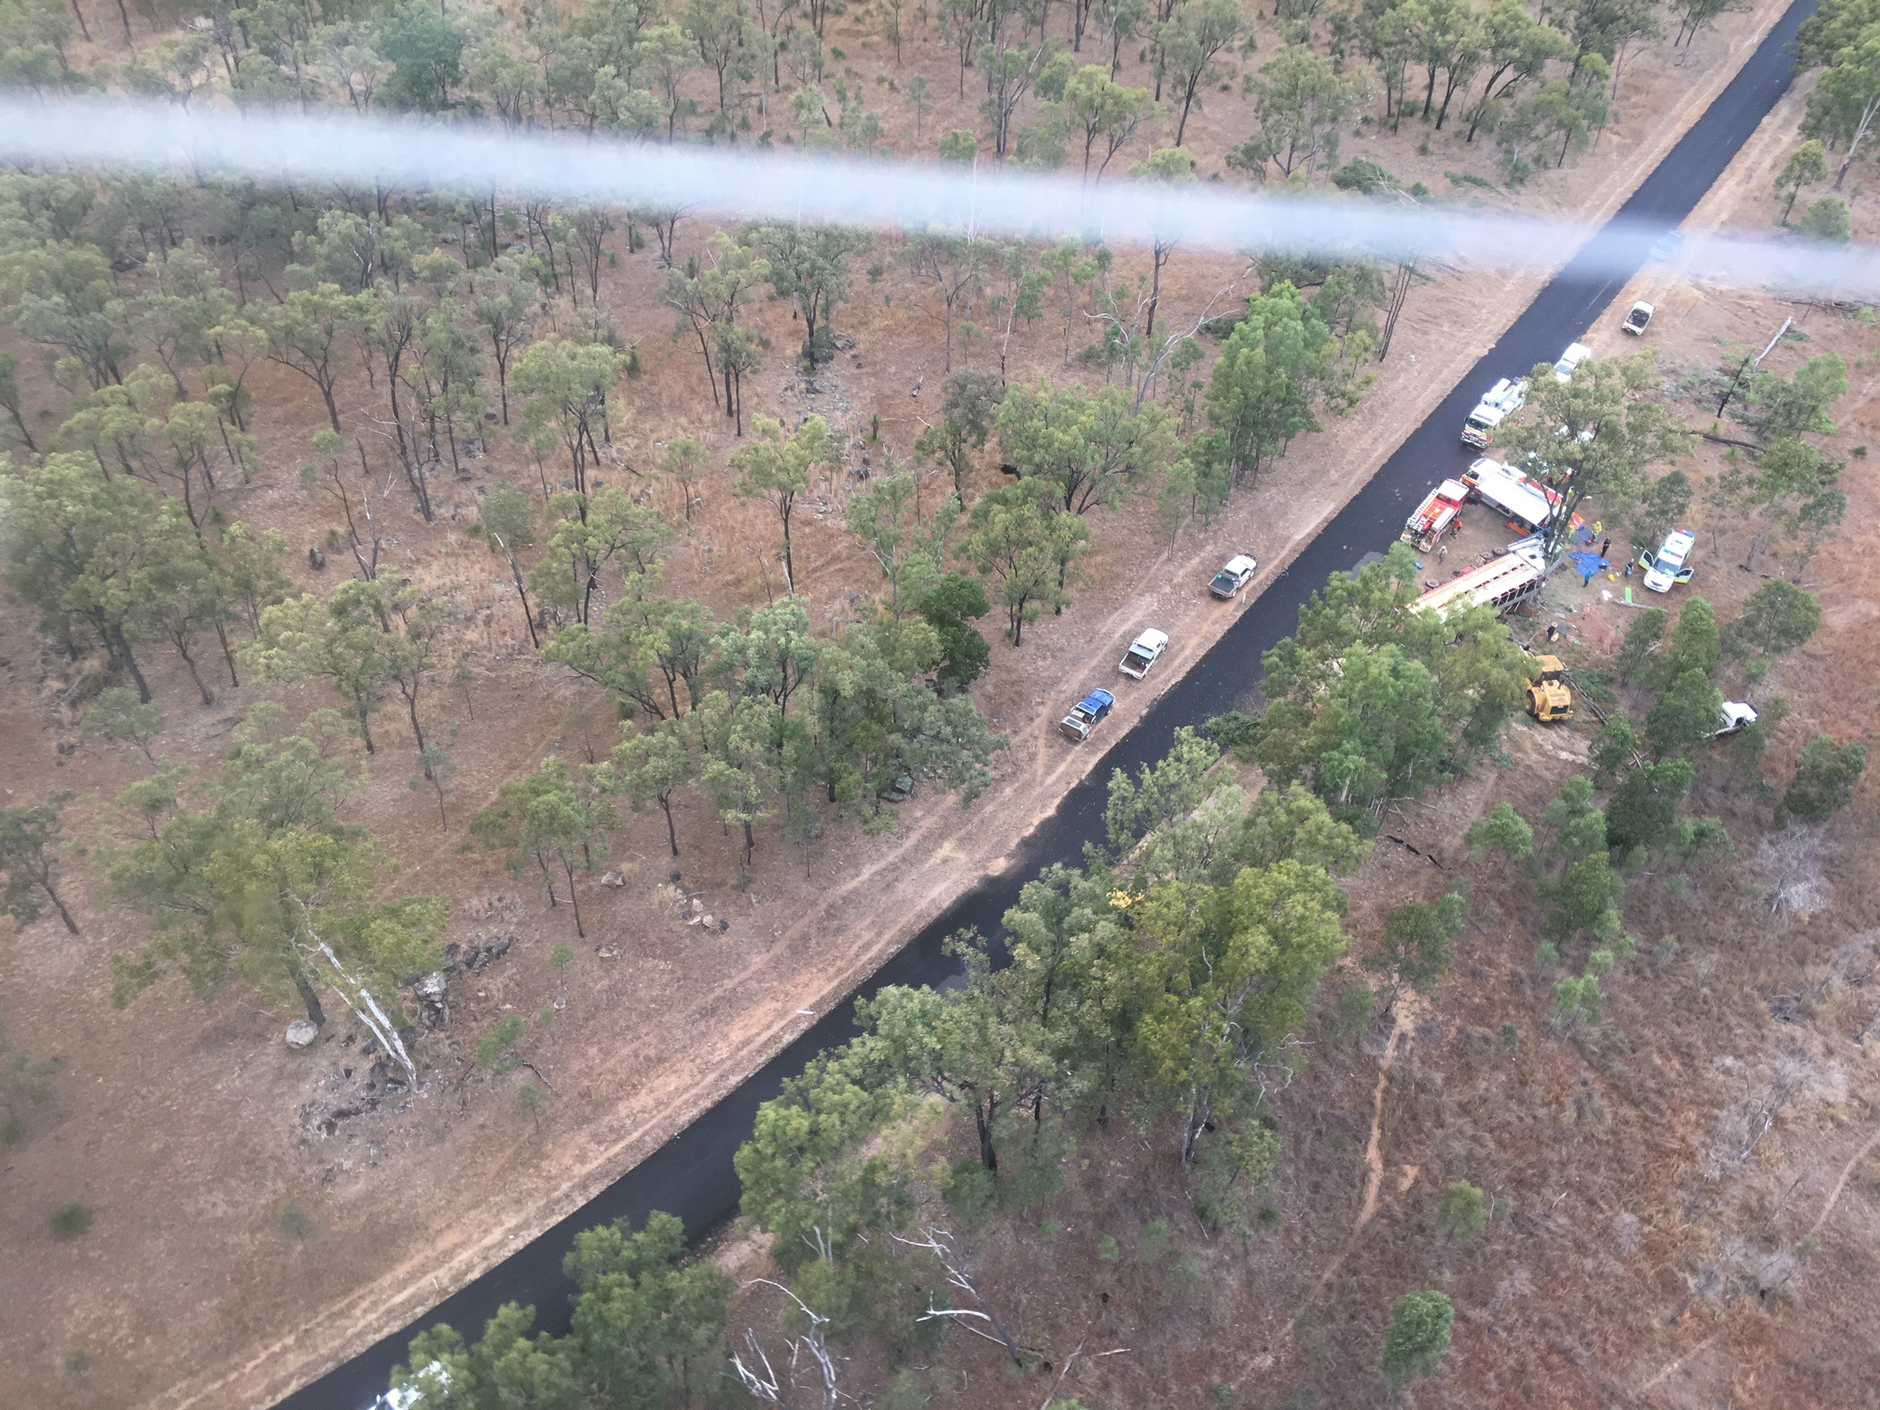 The scene of the crash as seen from the RACQ LifeFlight helicopter.